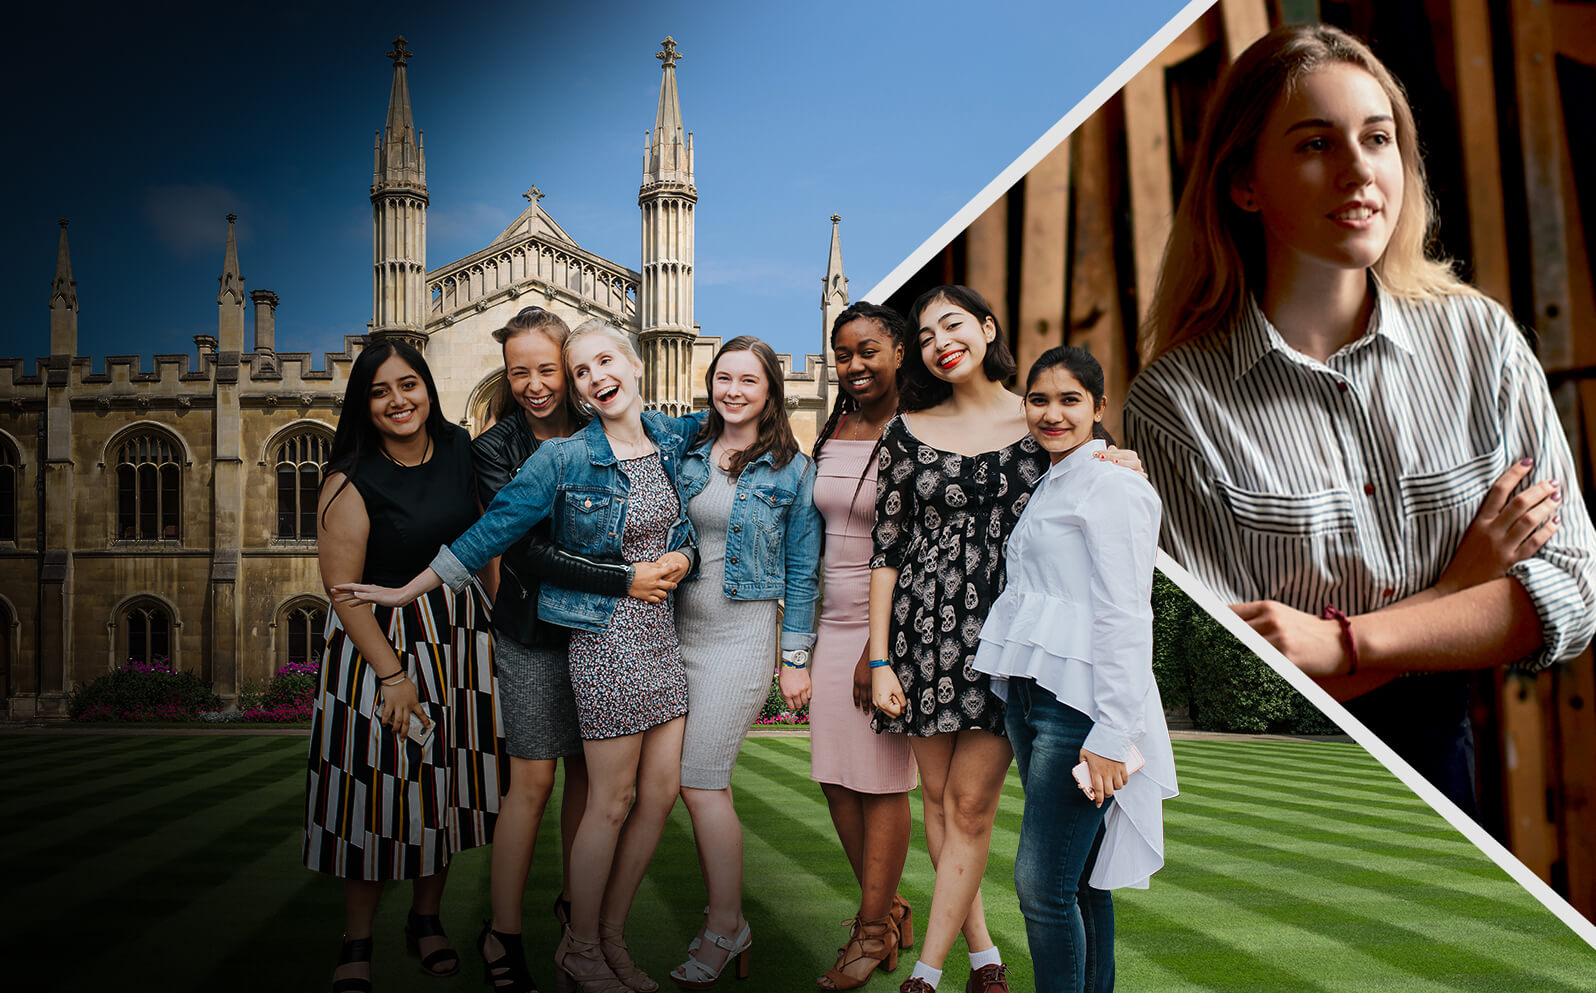 Cambridge Female Future Leaders Summer Program for Ages 16-18